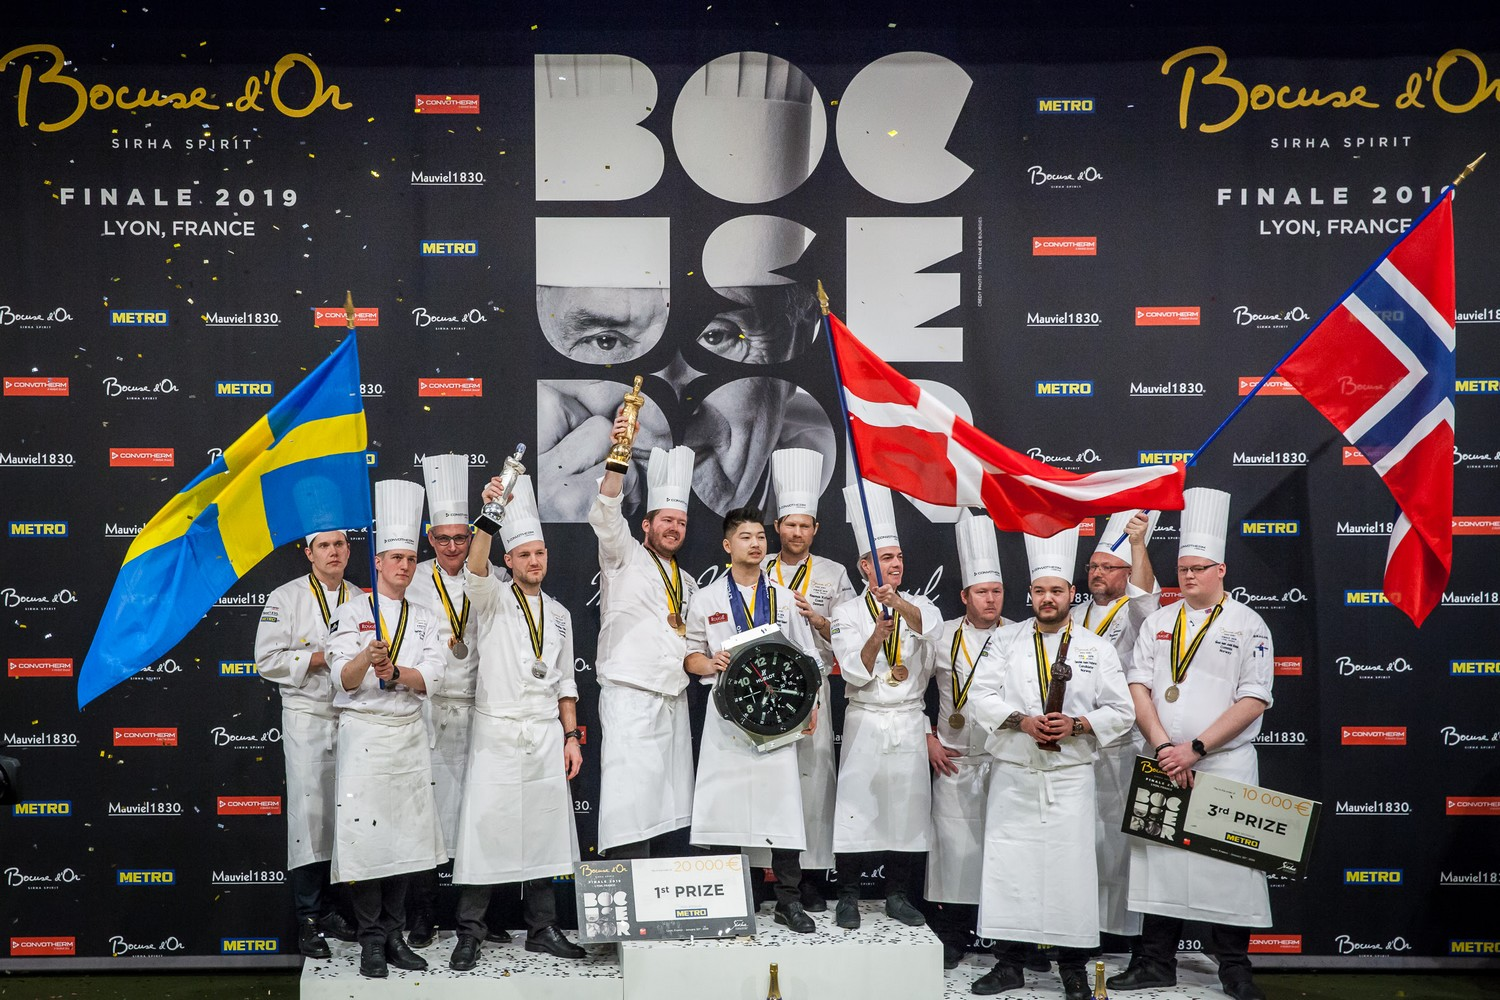 le podium nordique du Bocuse d'Or 2019 ©DR